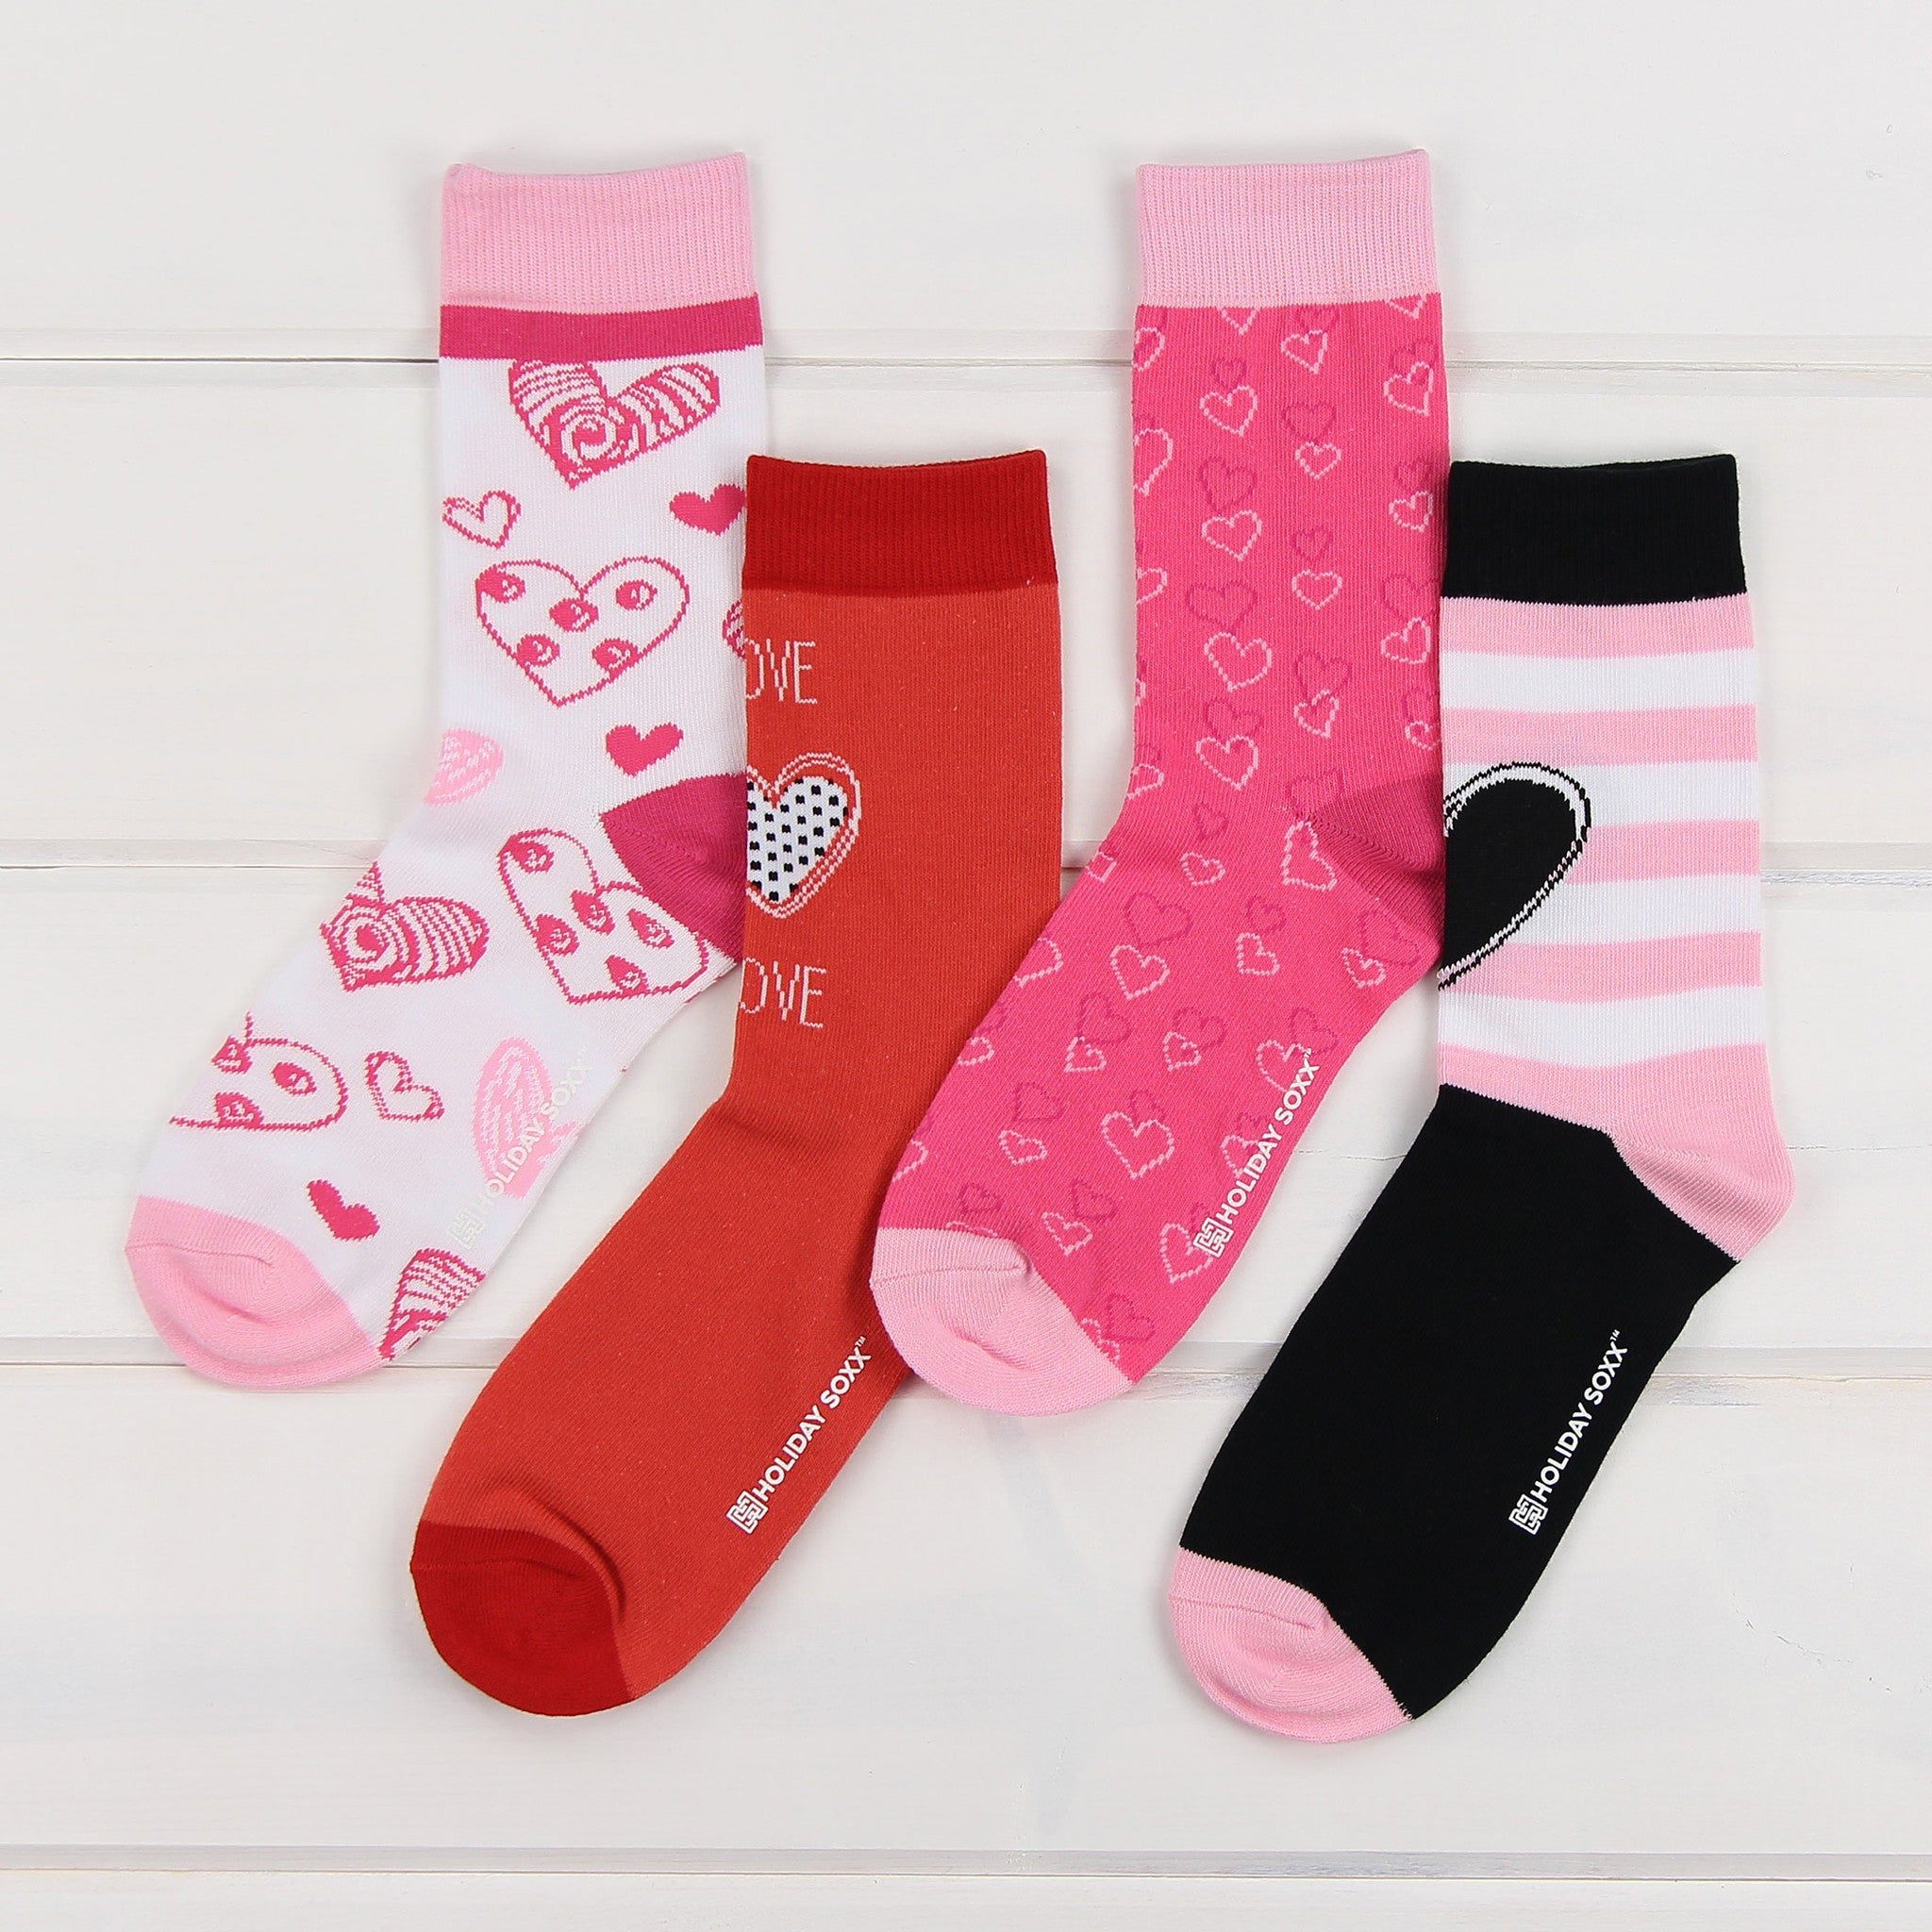 valentines day socks i heart you 4 pack - Valentines Socks